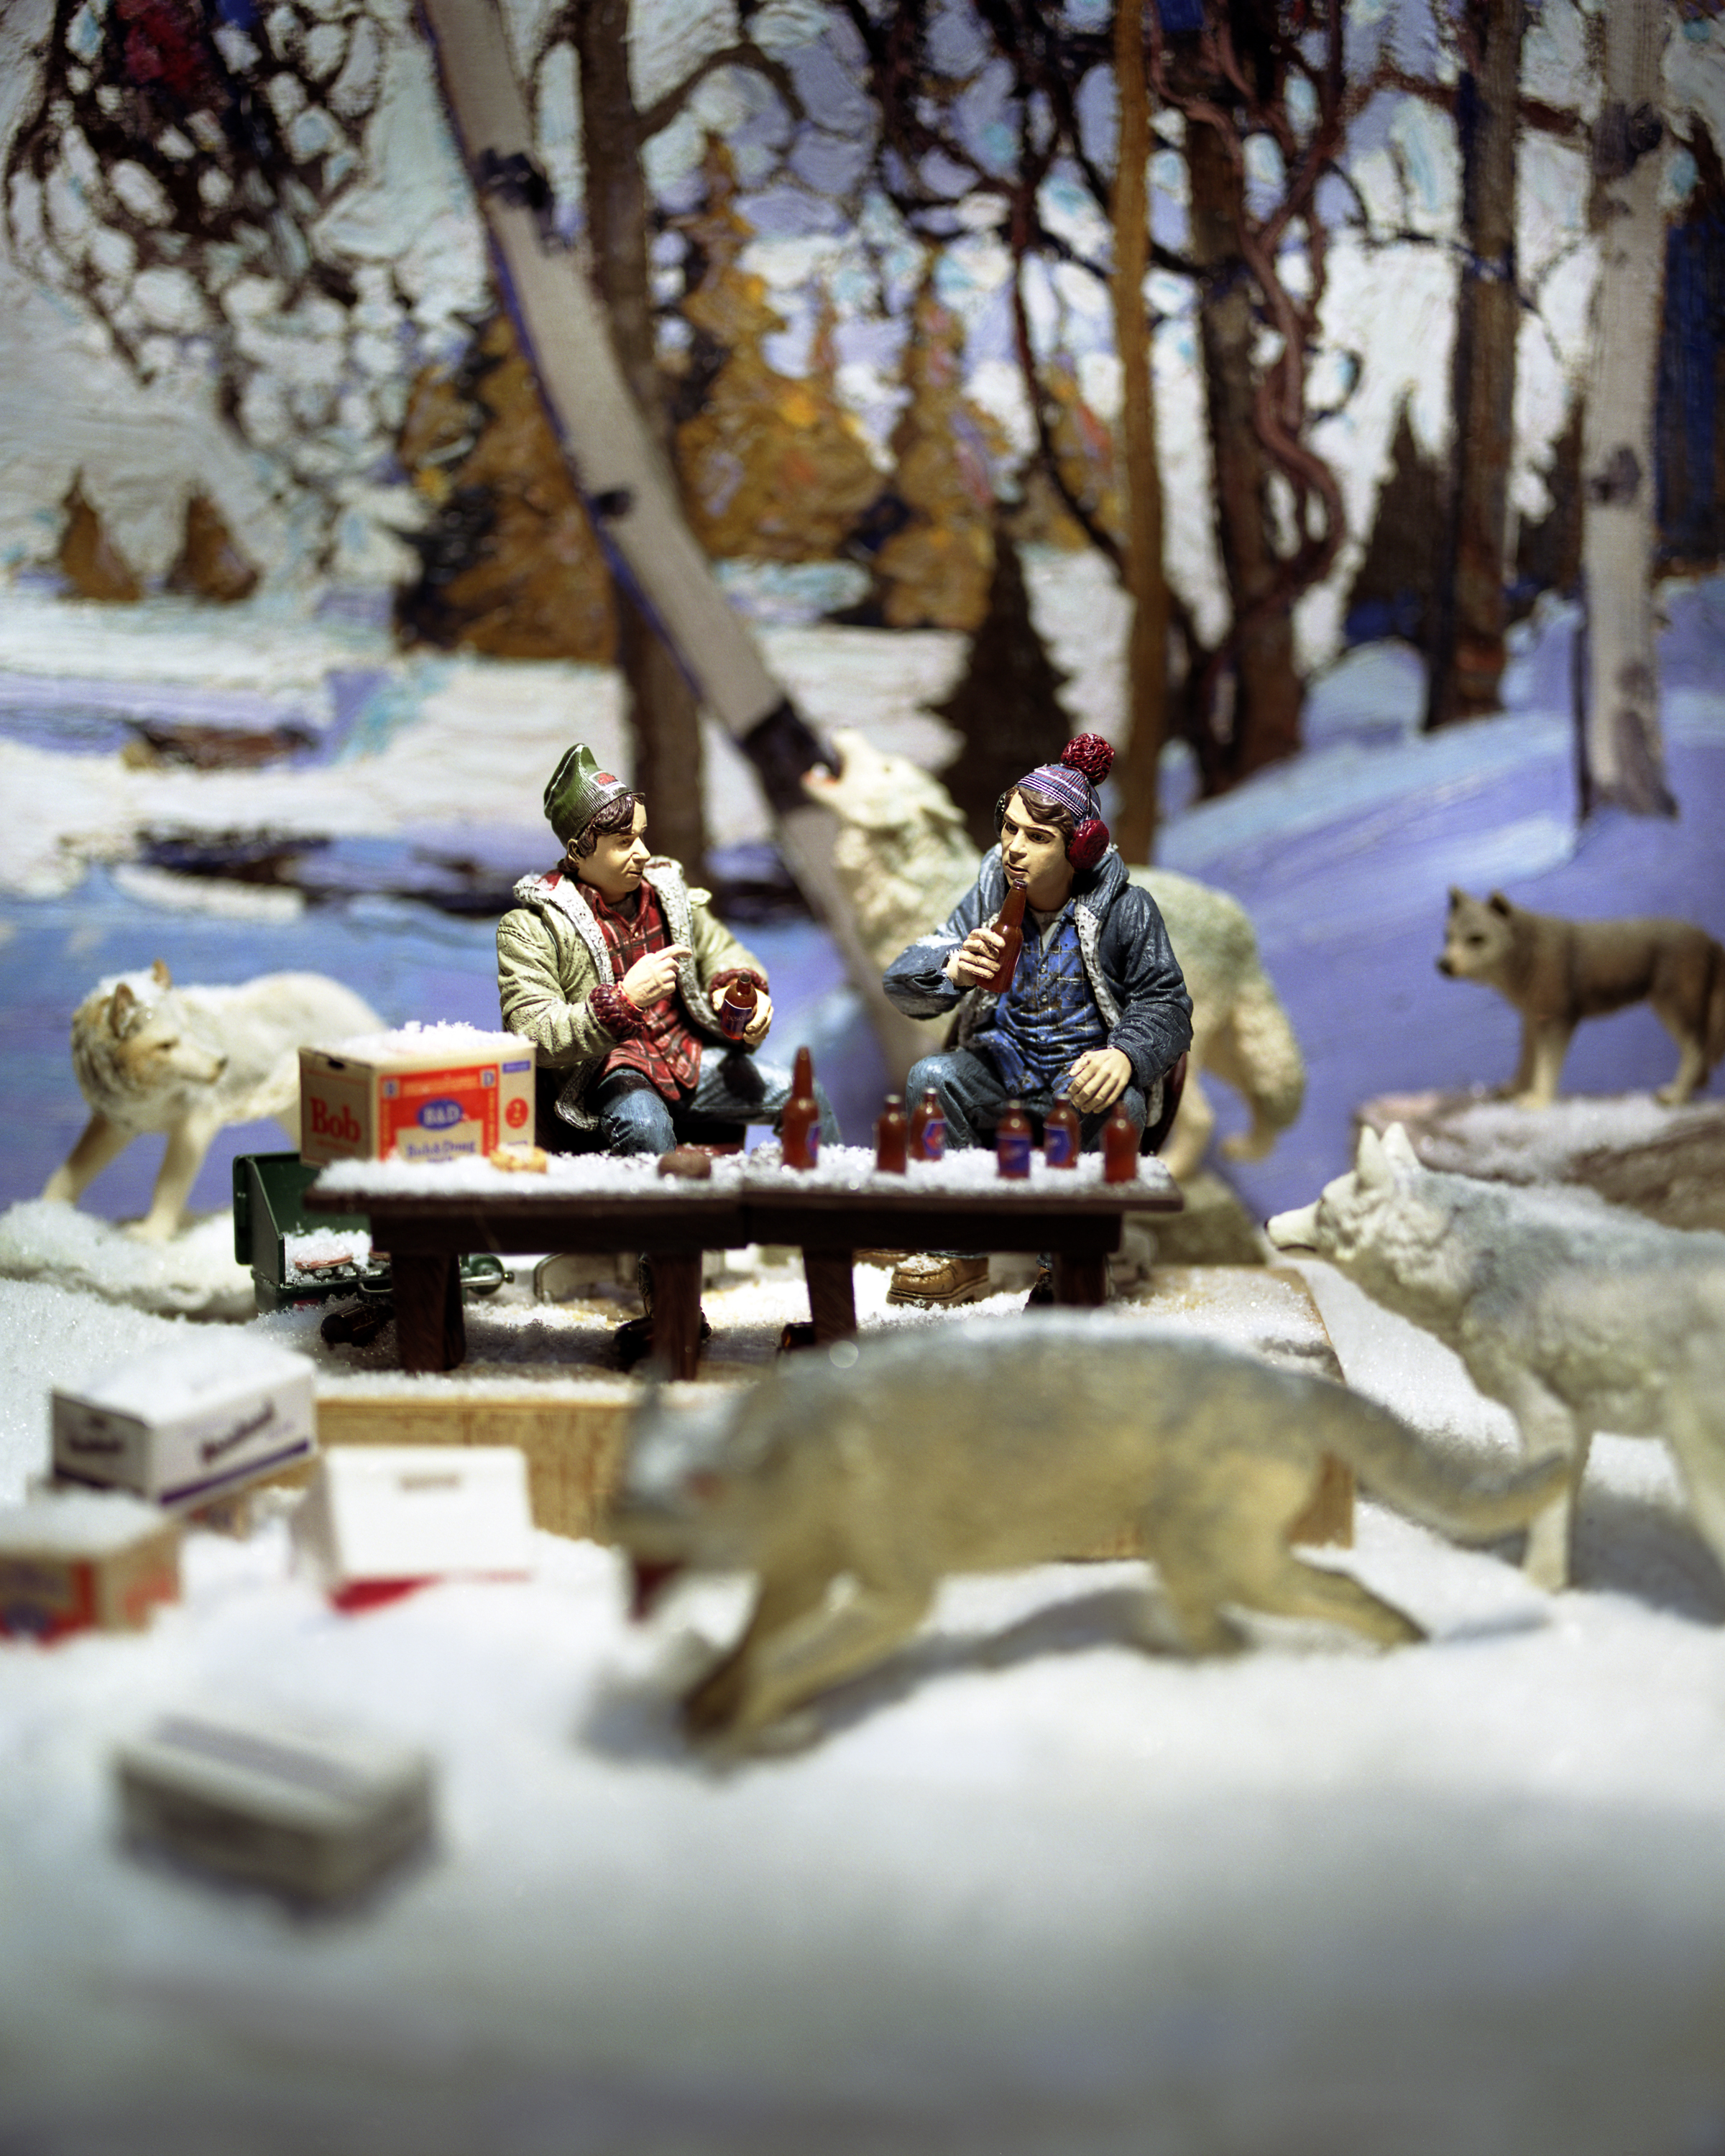 Group of Seven Awkward Moments (Early Snow with Bob and Doug), digital photograph, 2009. Image courtesy of Diana Thorneycroft.